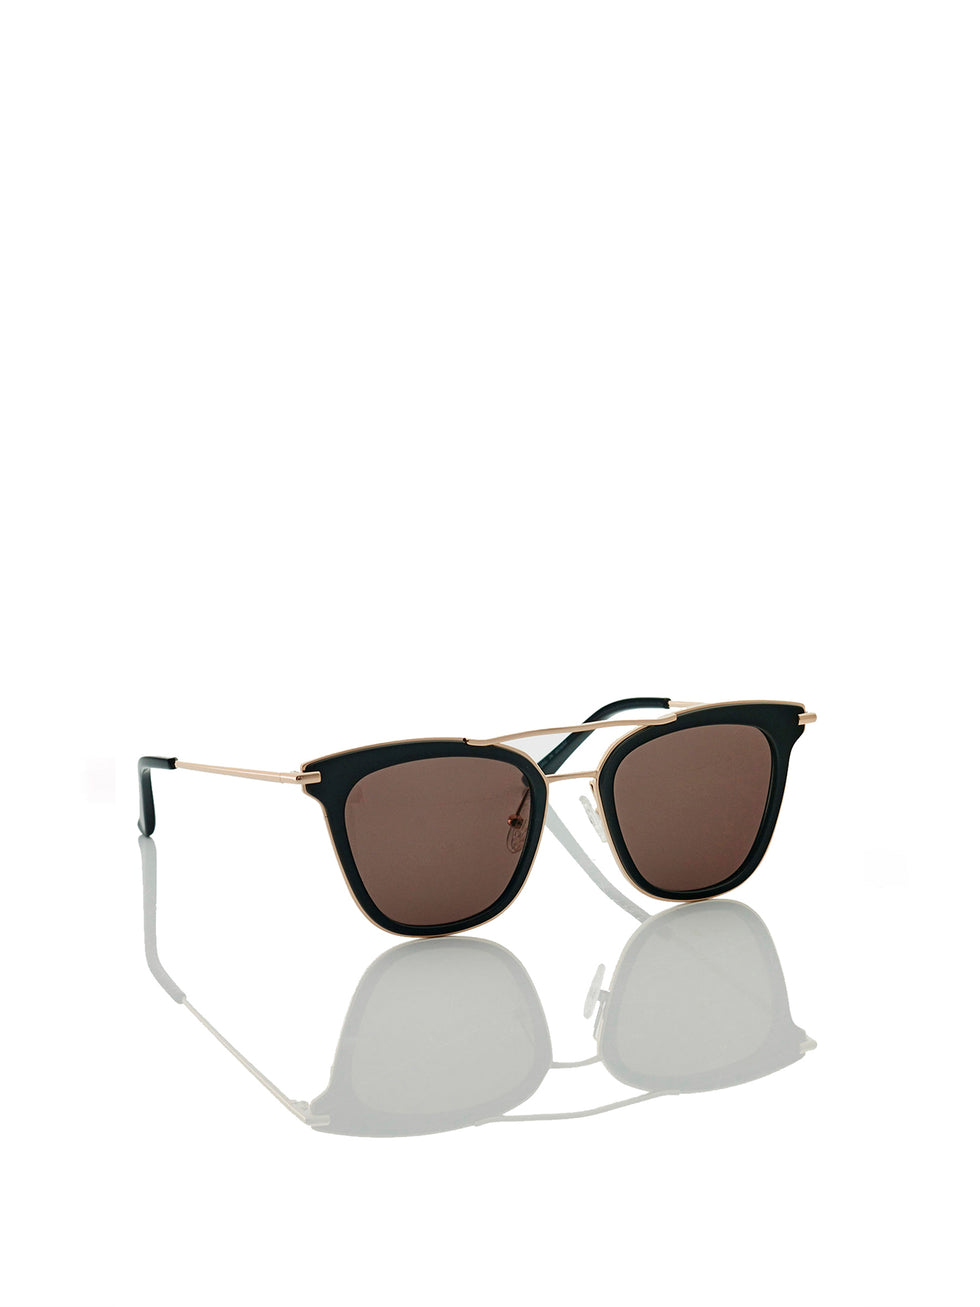 JH Eyewear No. 07 (acetate) black gold